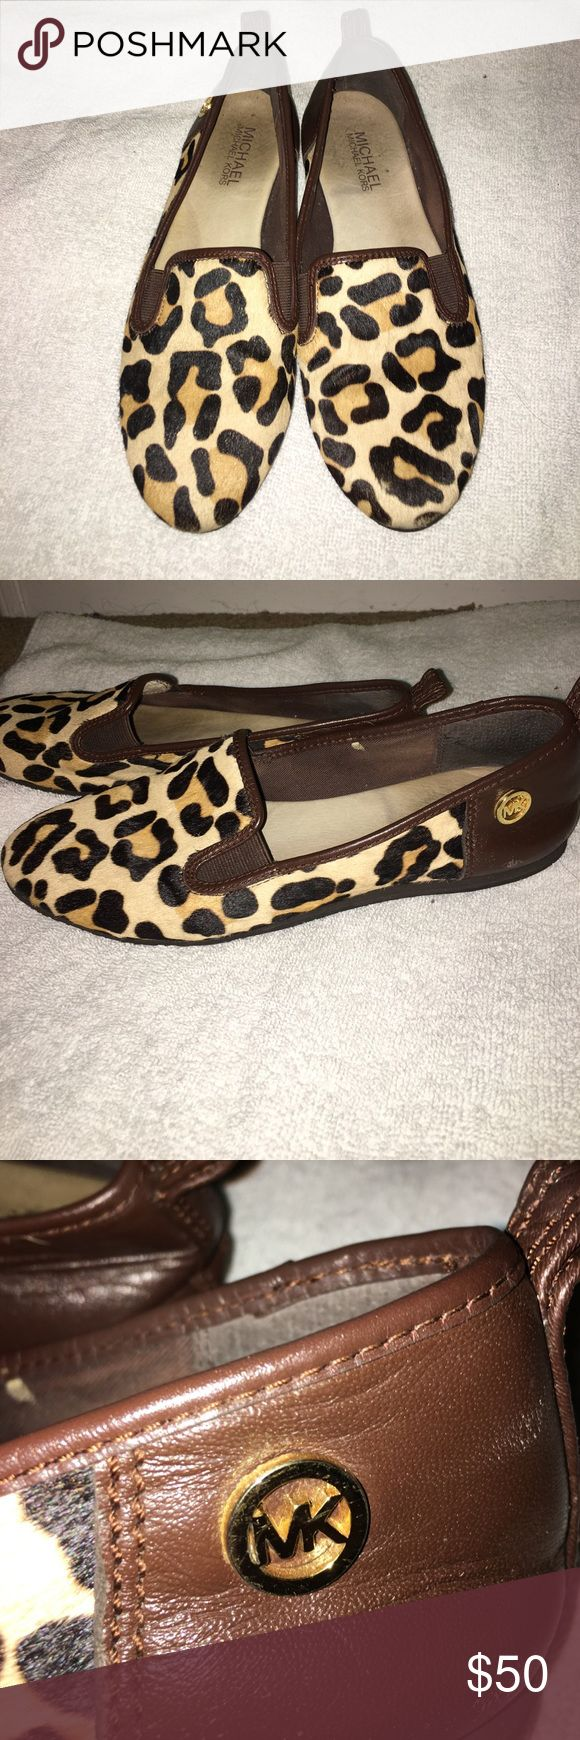 Michael Kors cheetah flats Fashionable Michael Kors flats! Very comfy! In good condition! Michael Kors Shoes Flats & Loafers